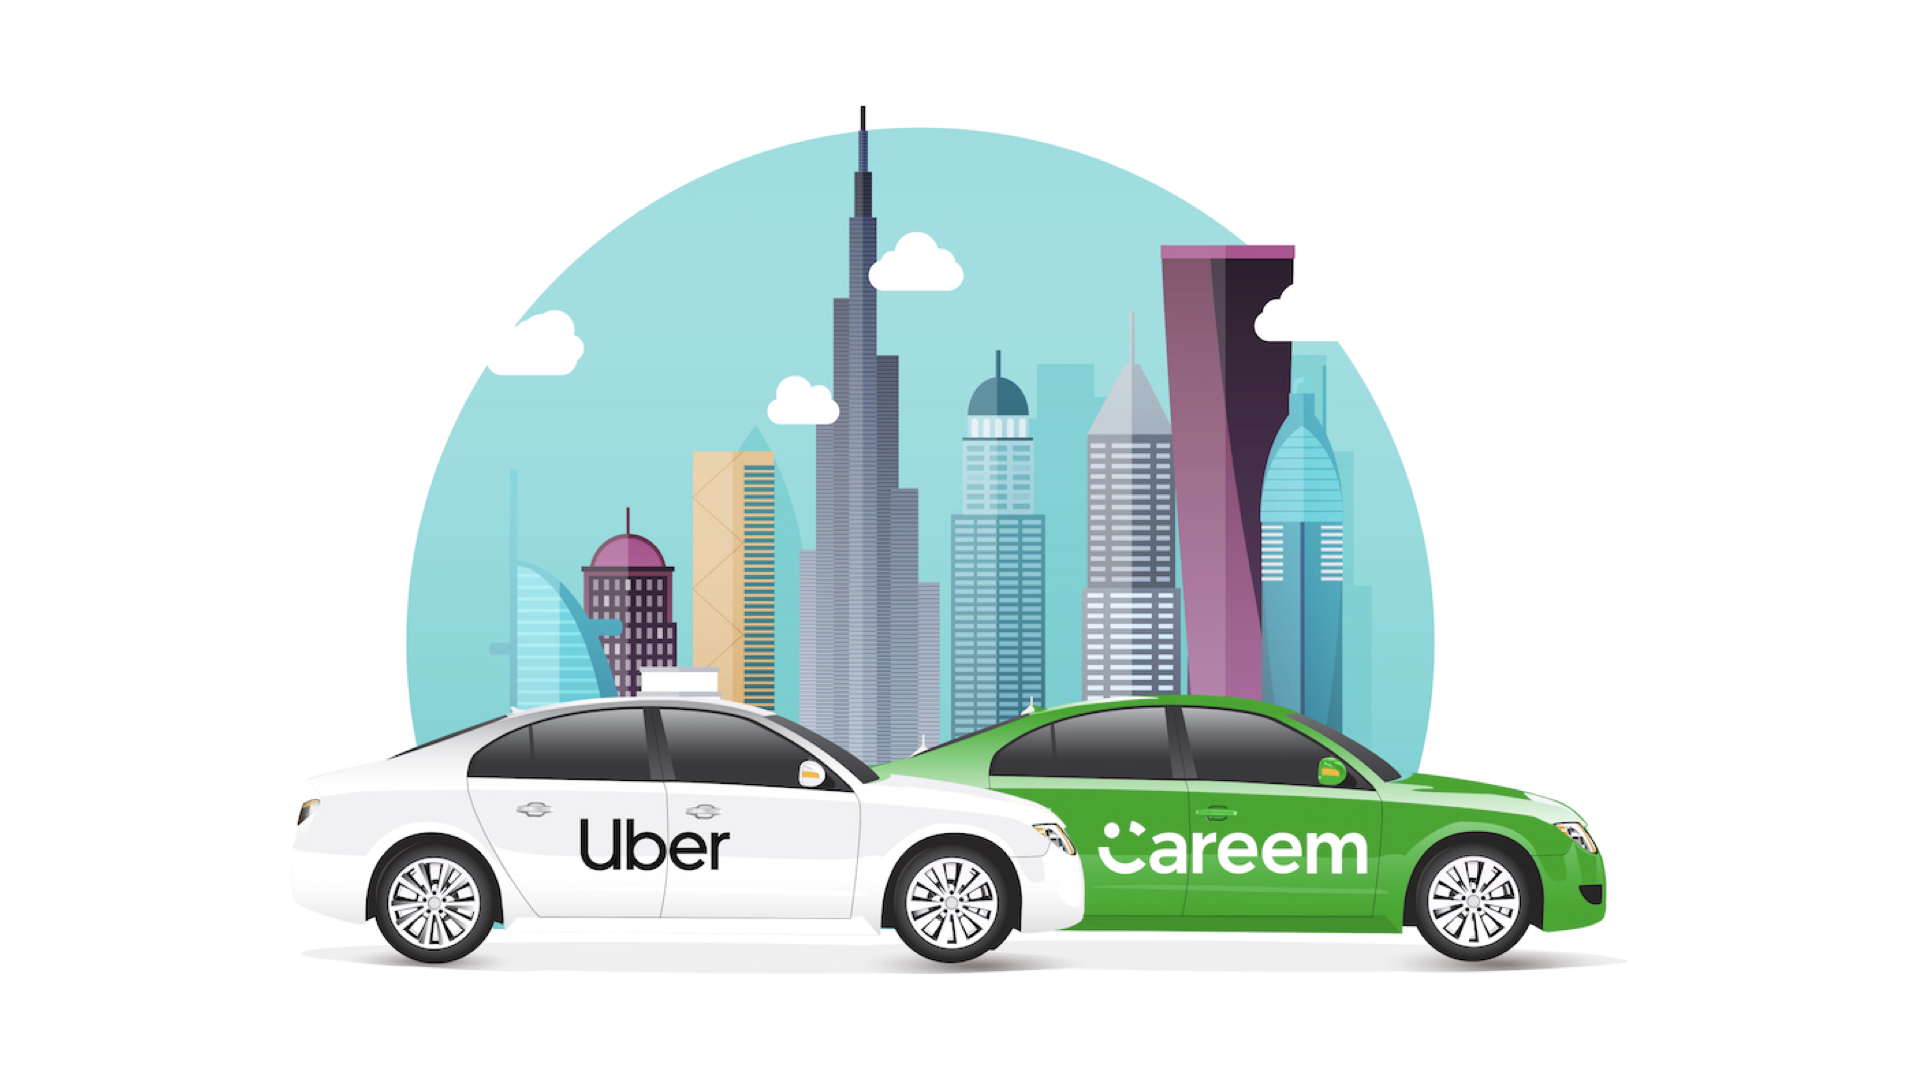 Official: Uber acquires Middle Eastern ride-hailing startup Careem for $3.1B